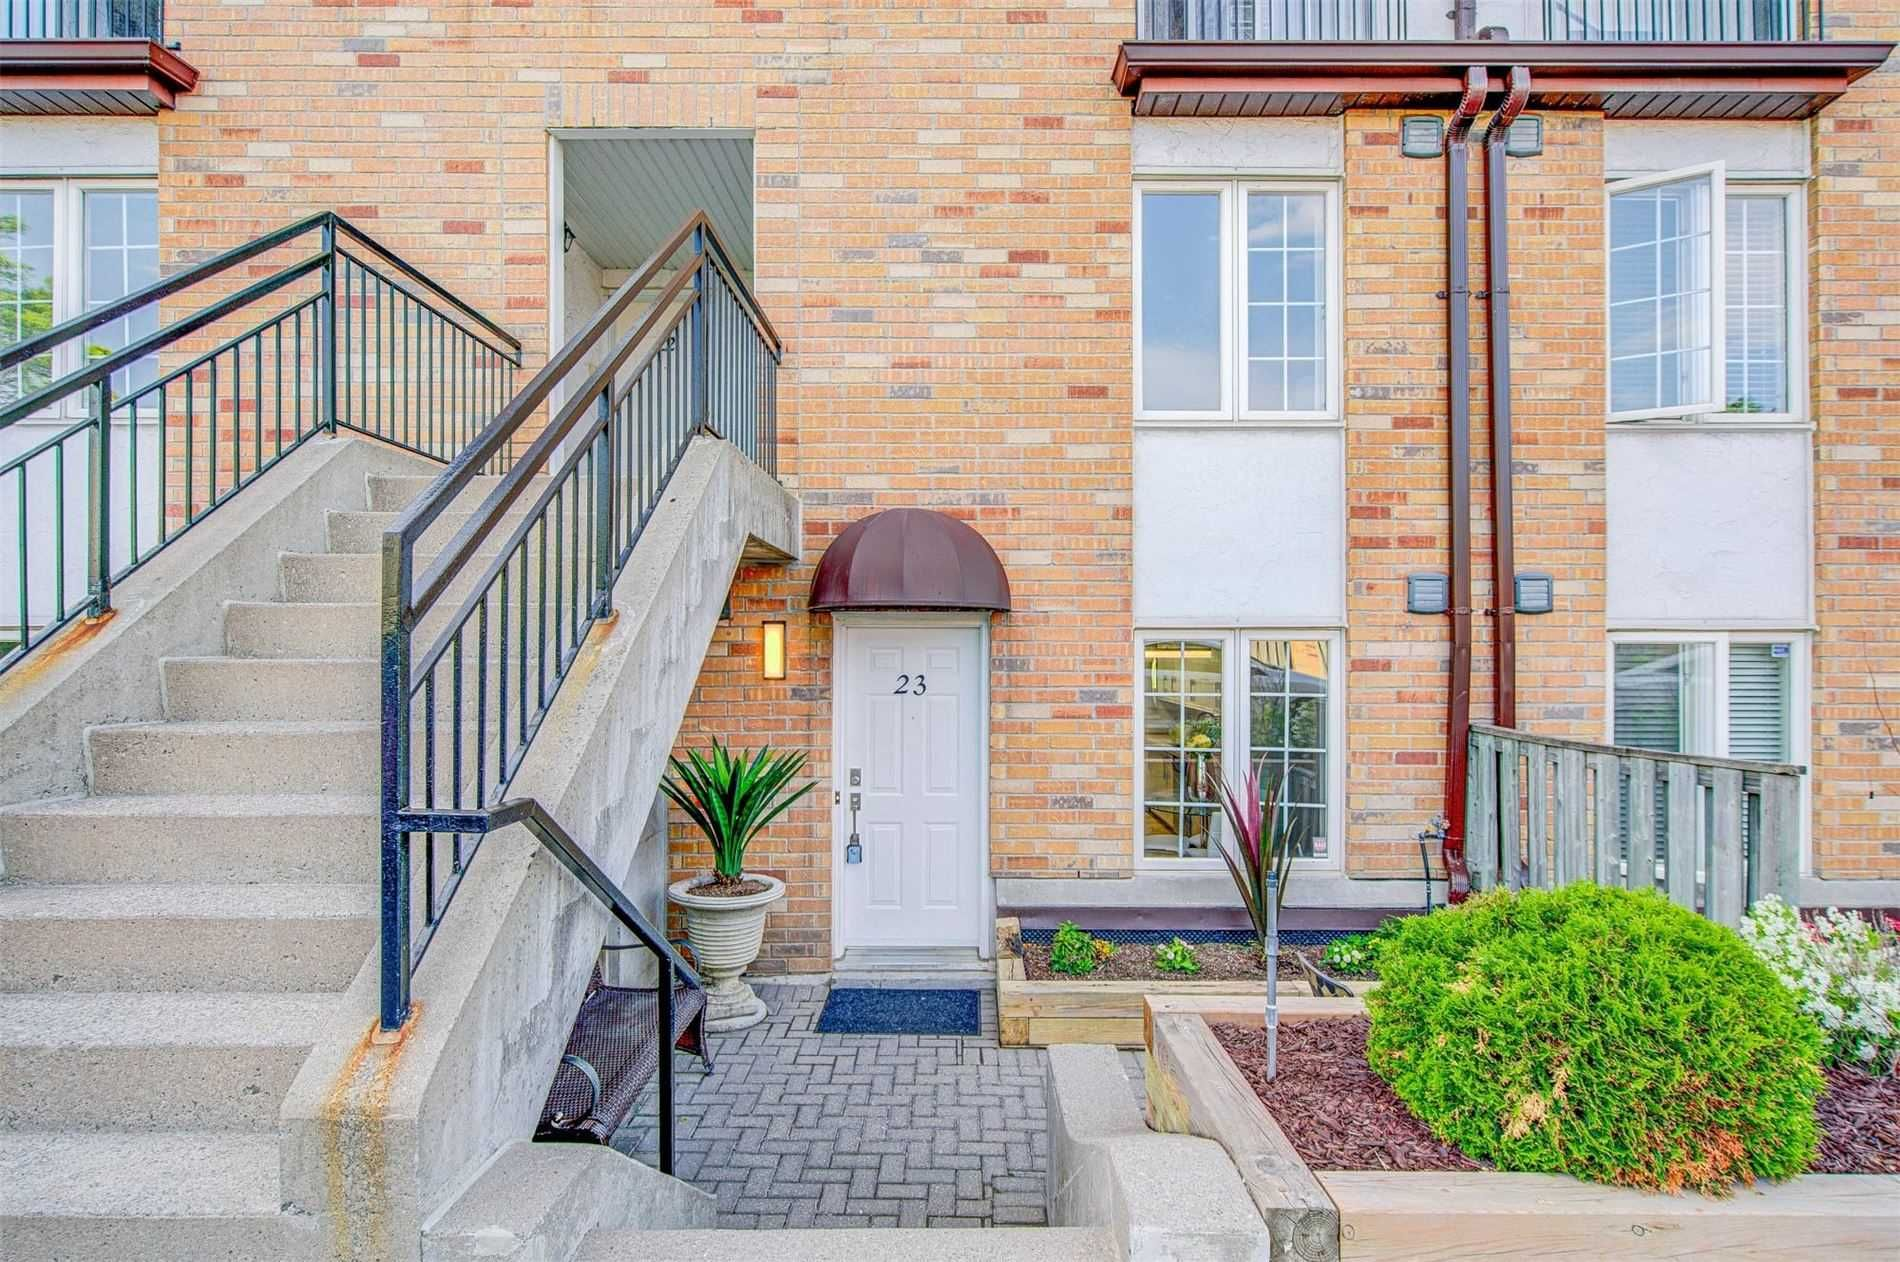 988 Sheppard Ave W, unit 23 for sale in Toronto - image #2